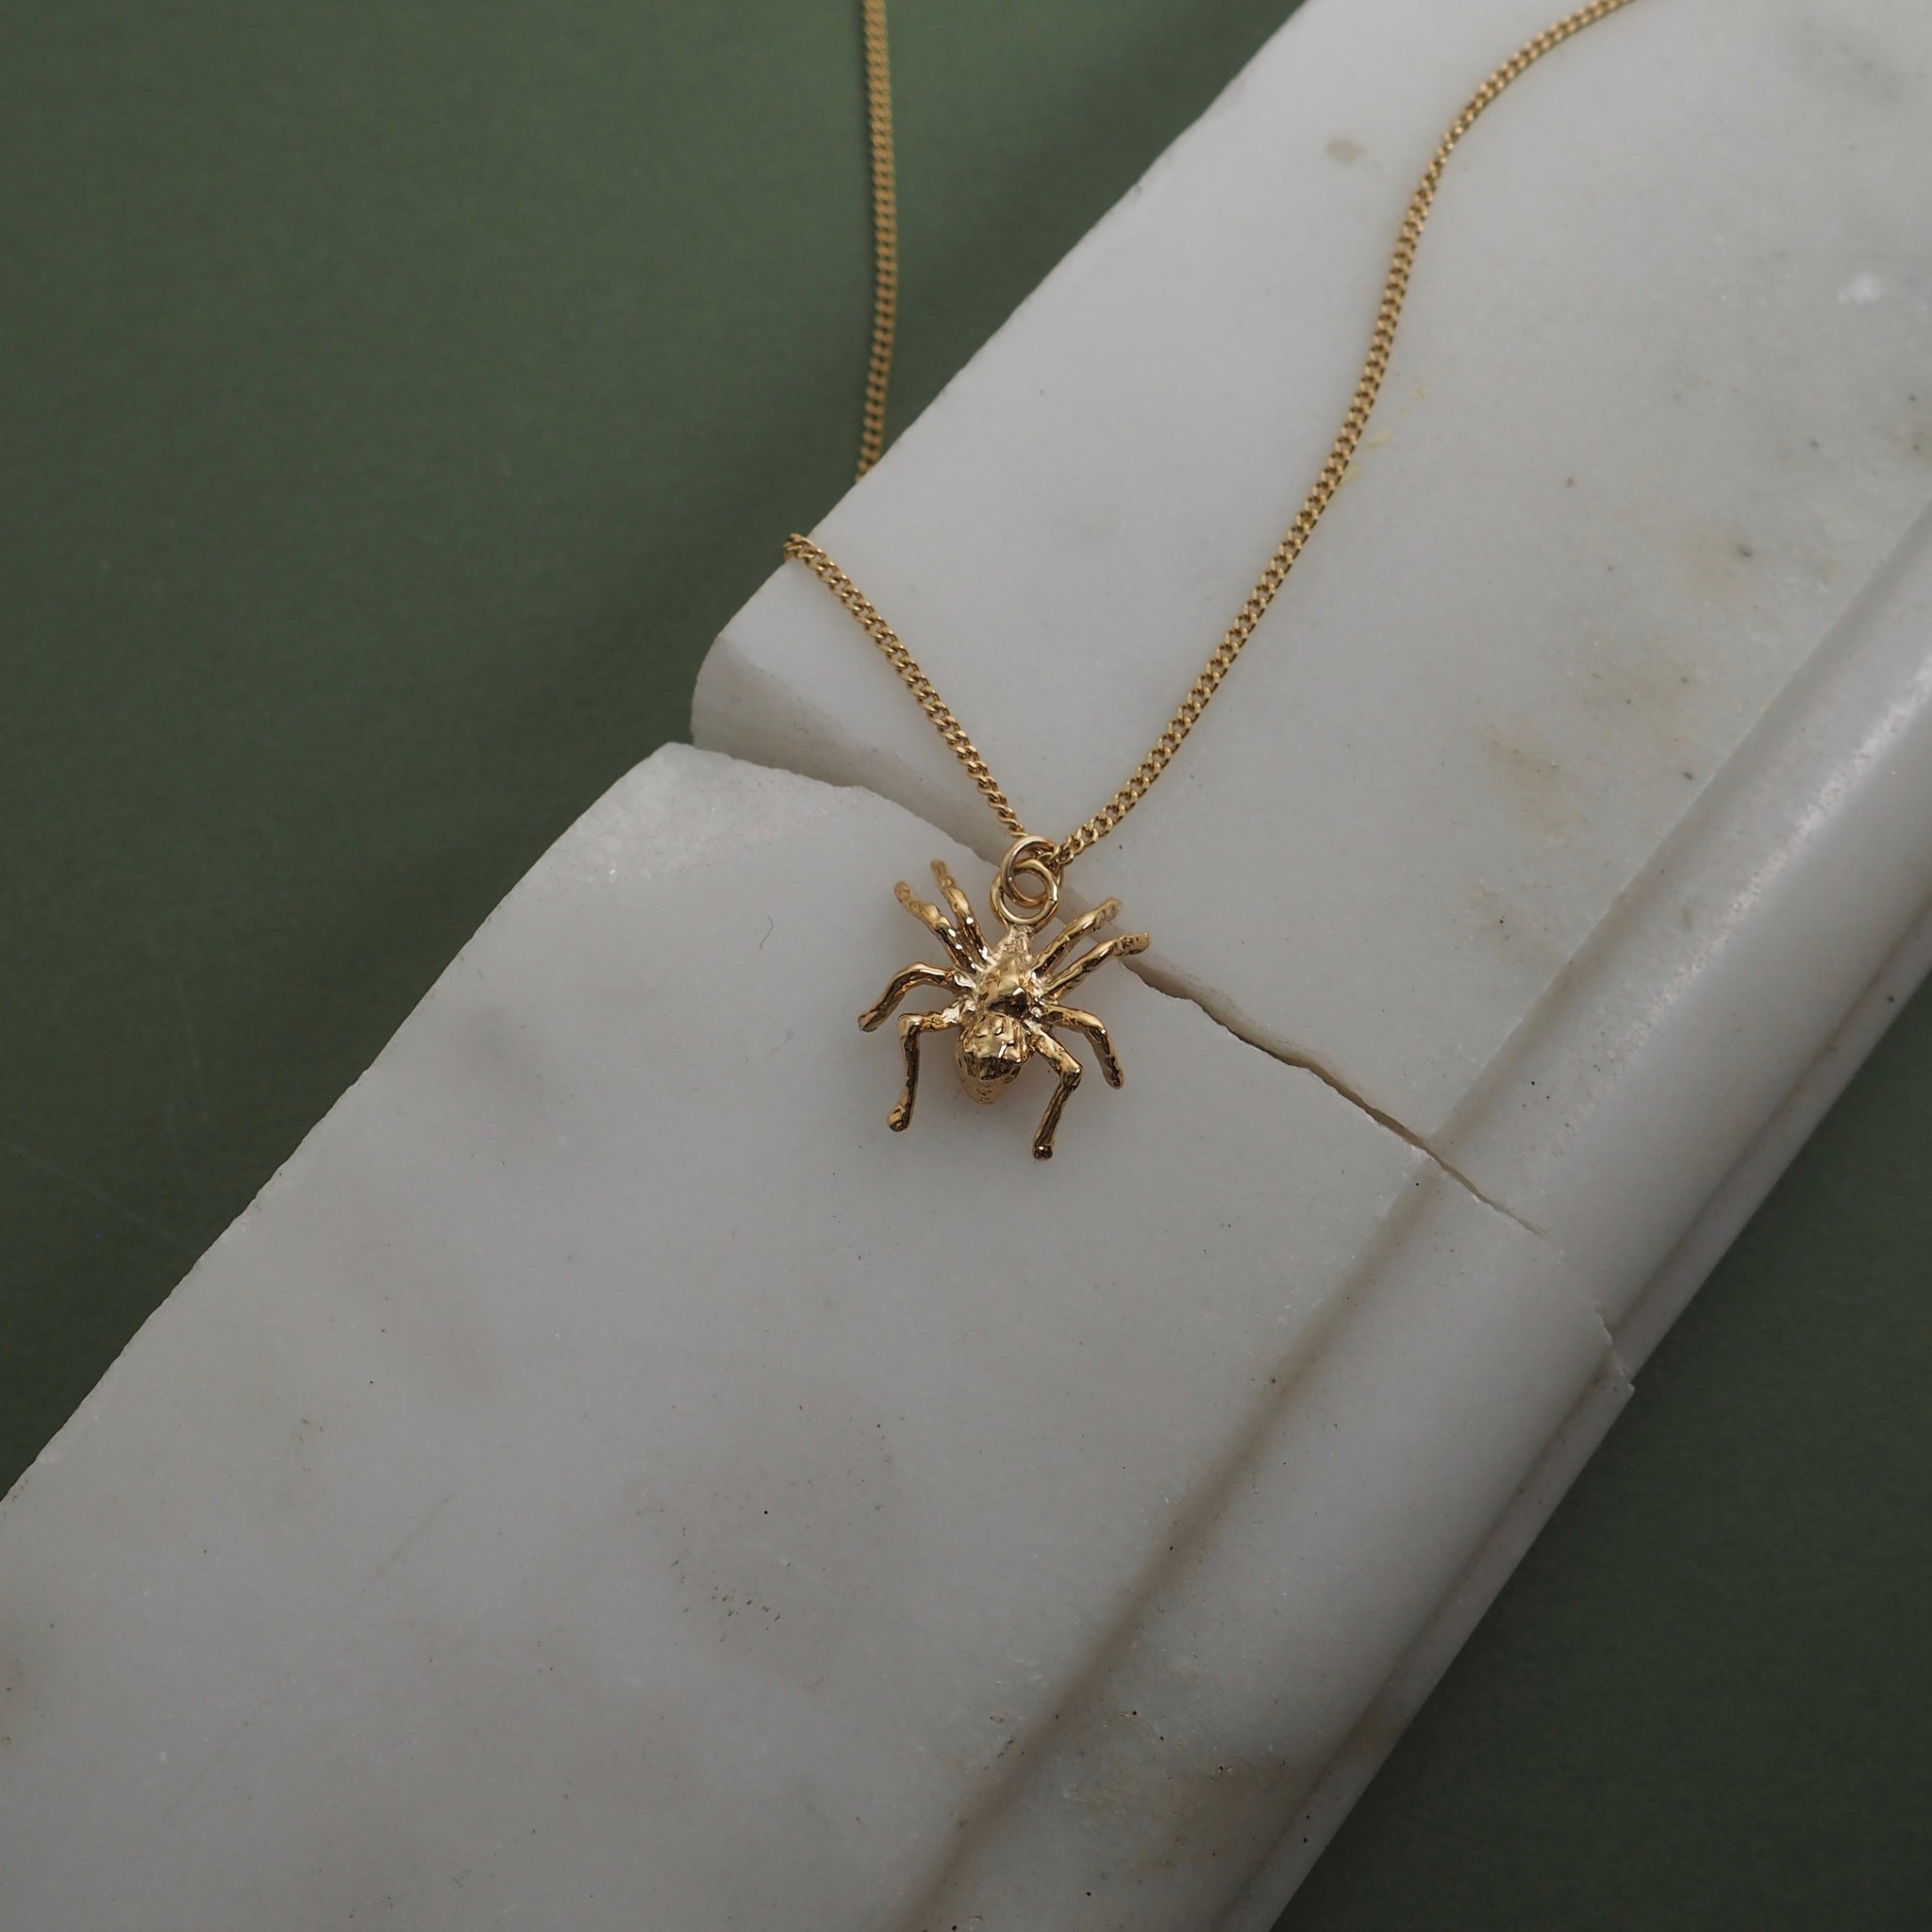 9ct Gold Little Spider Necklace by Yasmin Everley